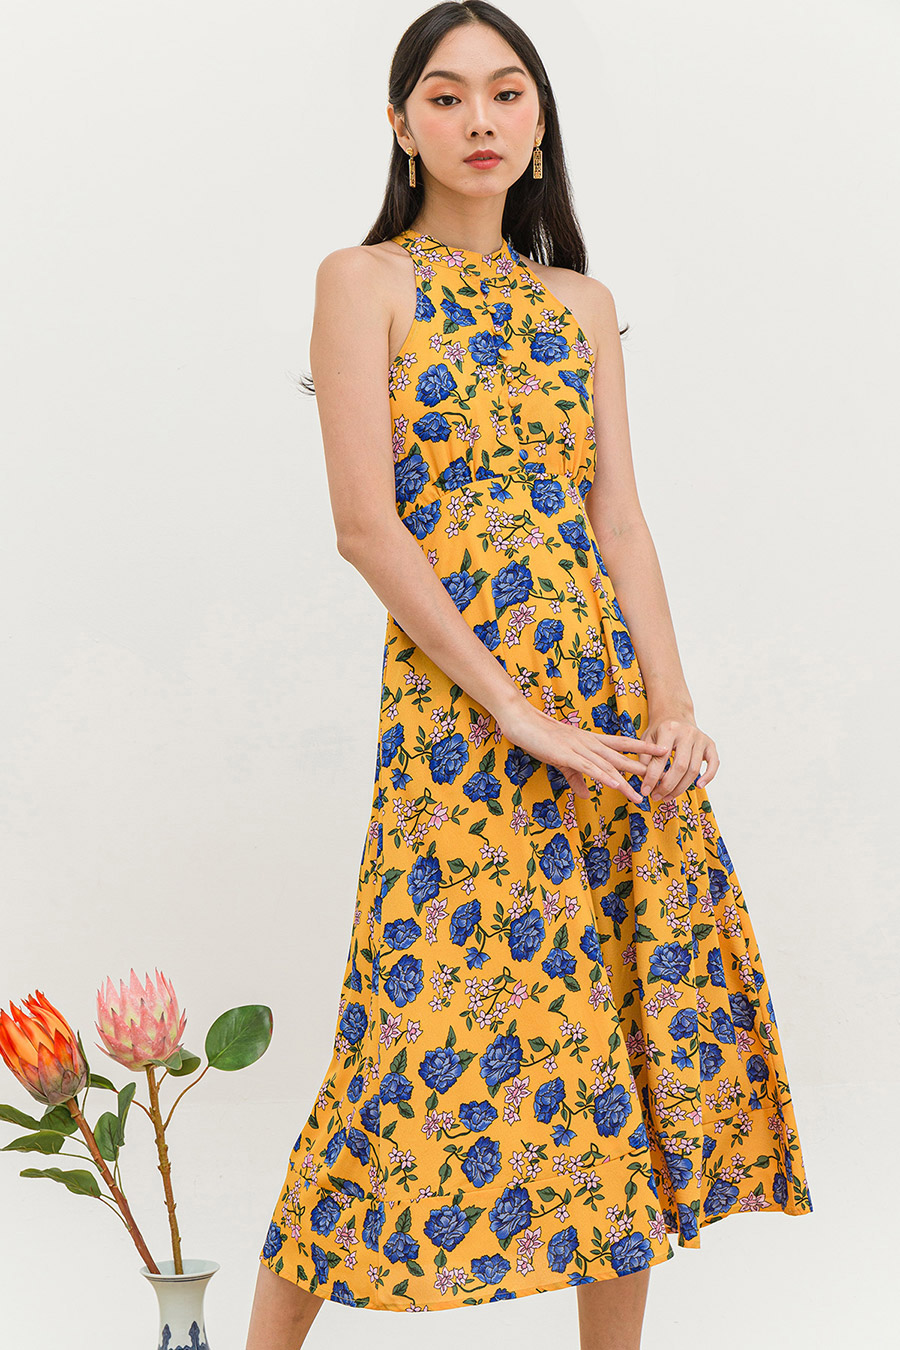 *RESTOCKED* MASSON DRESS - ORIENT PEONY [BY MODPARADE]